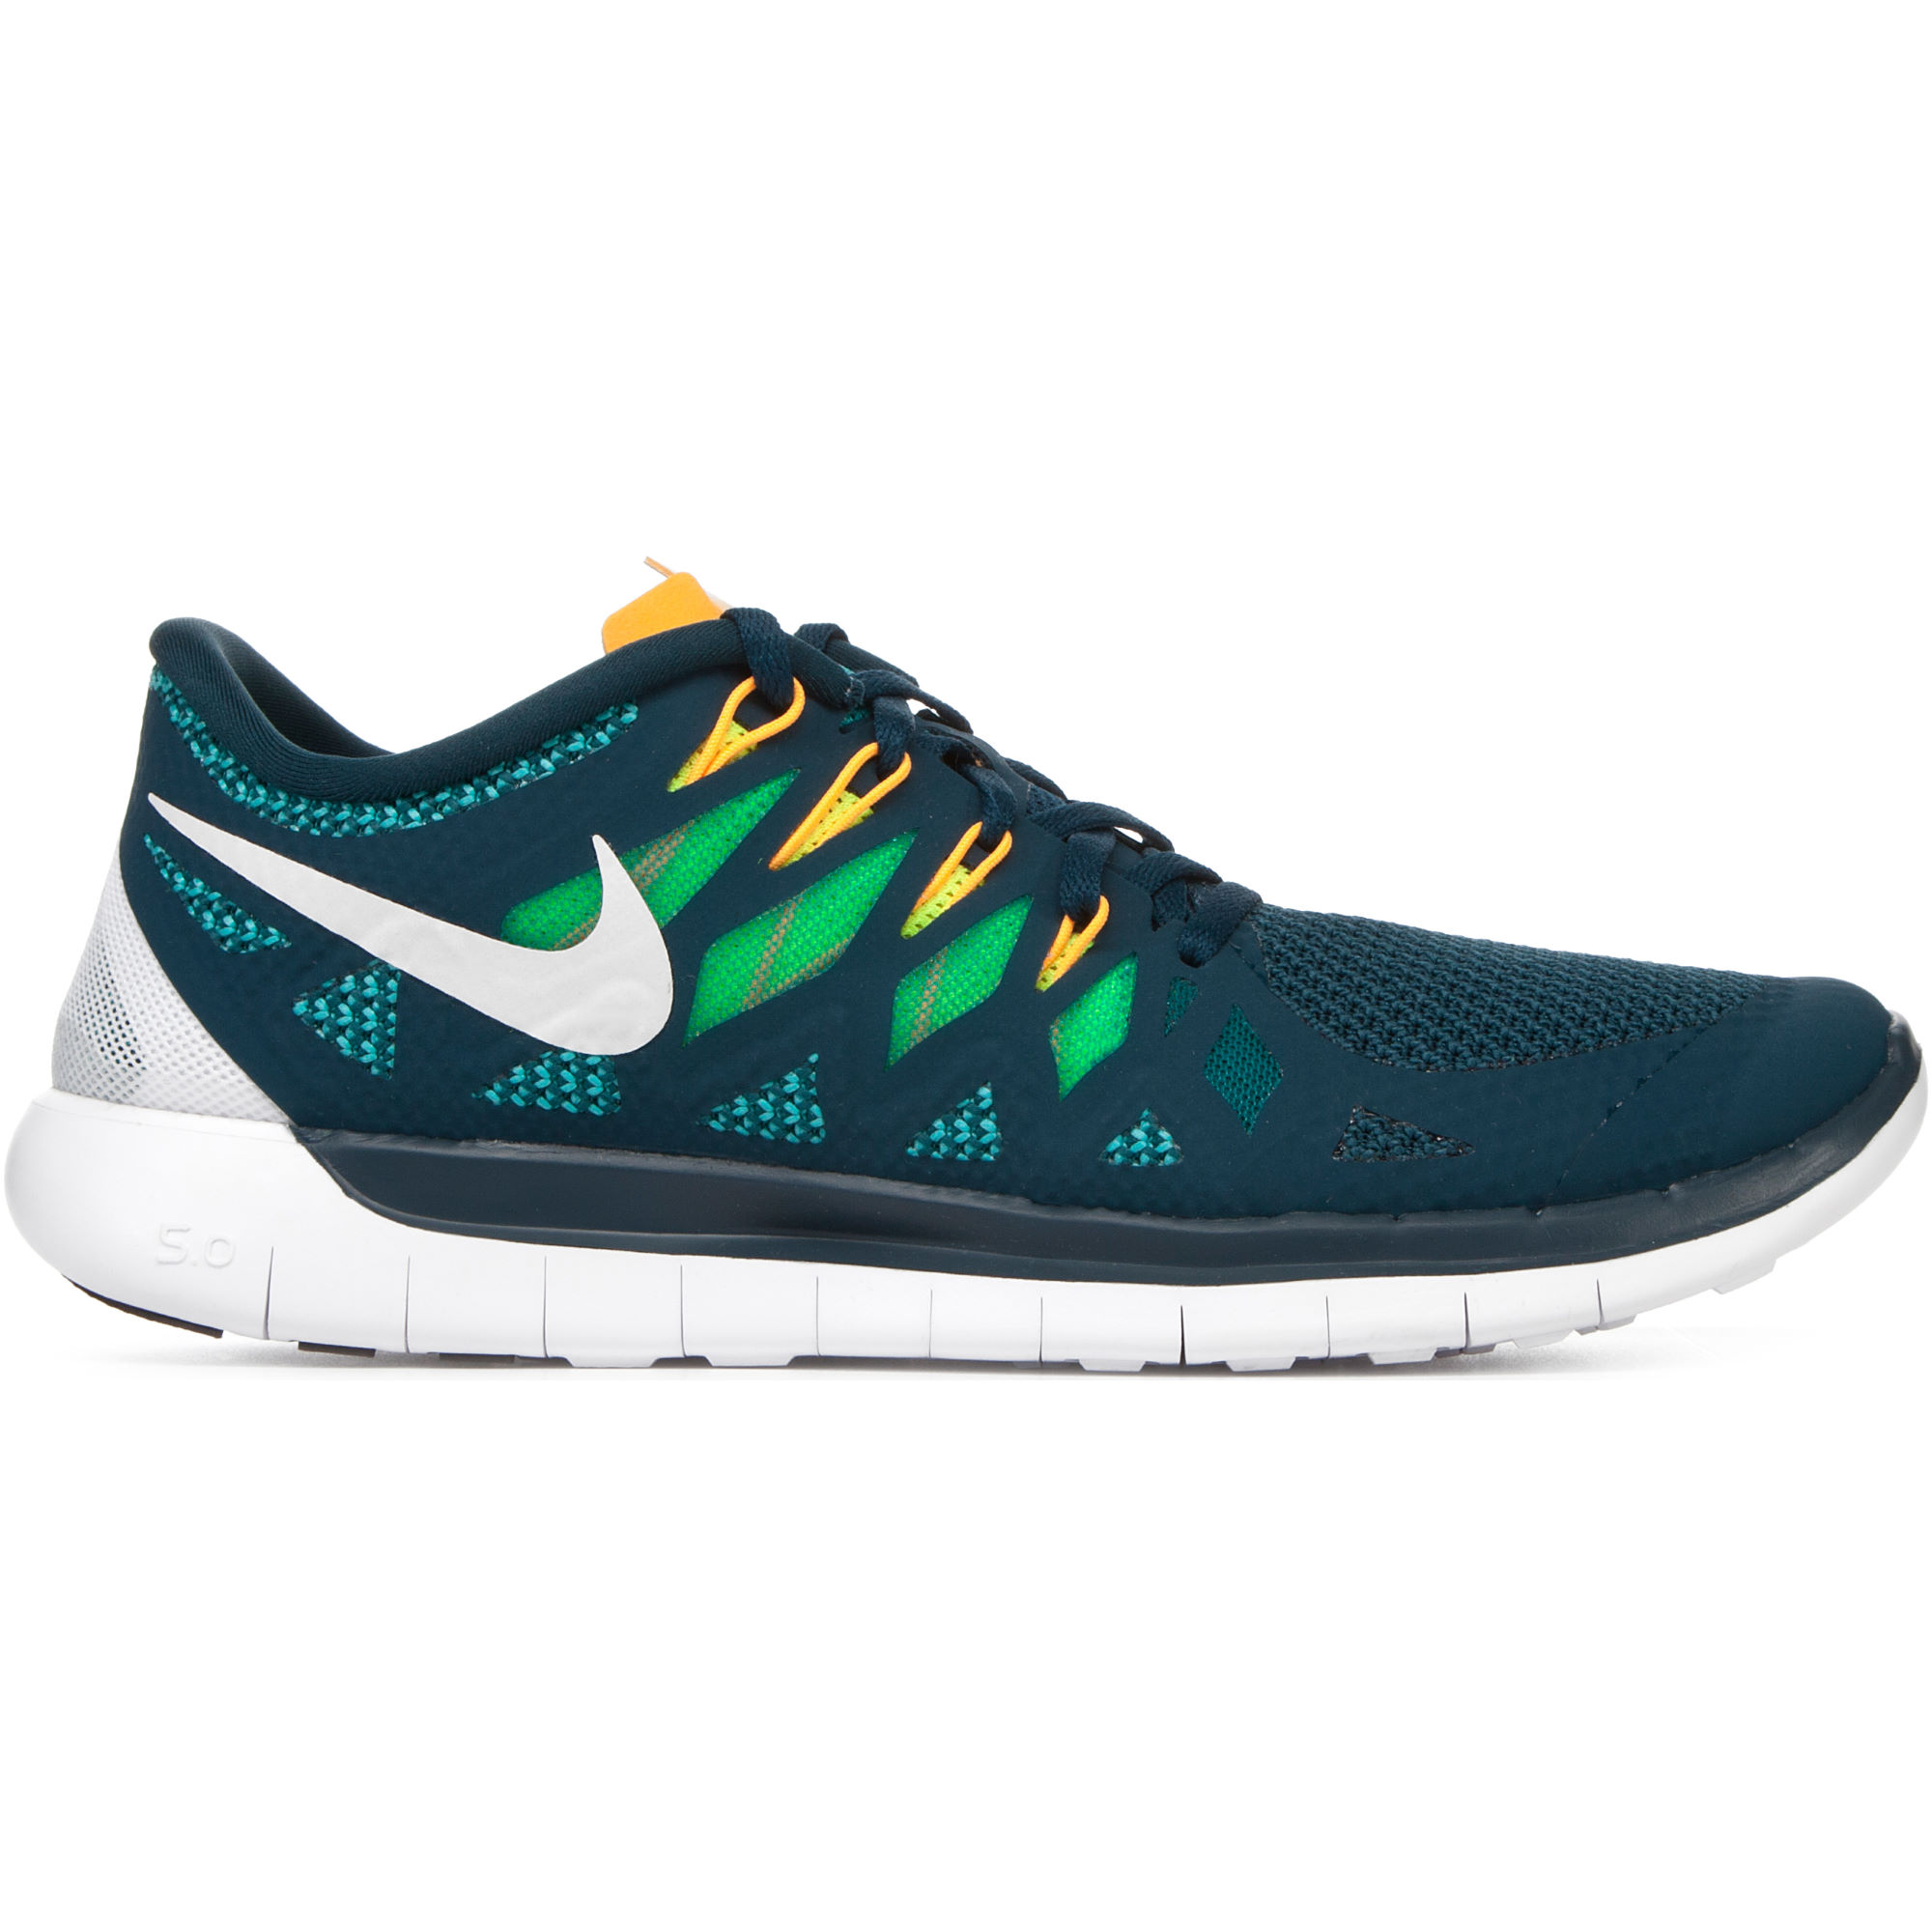 nike free 5.0 running shoes